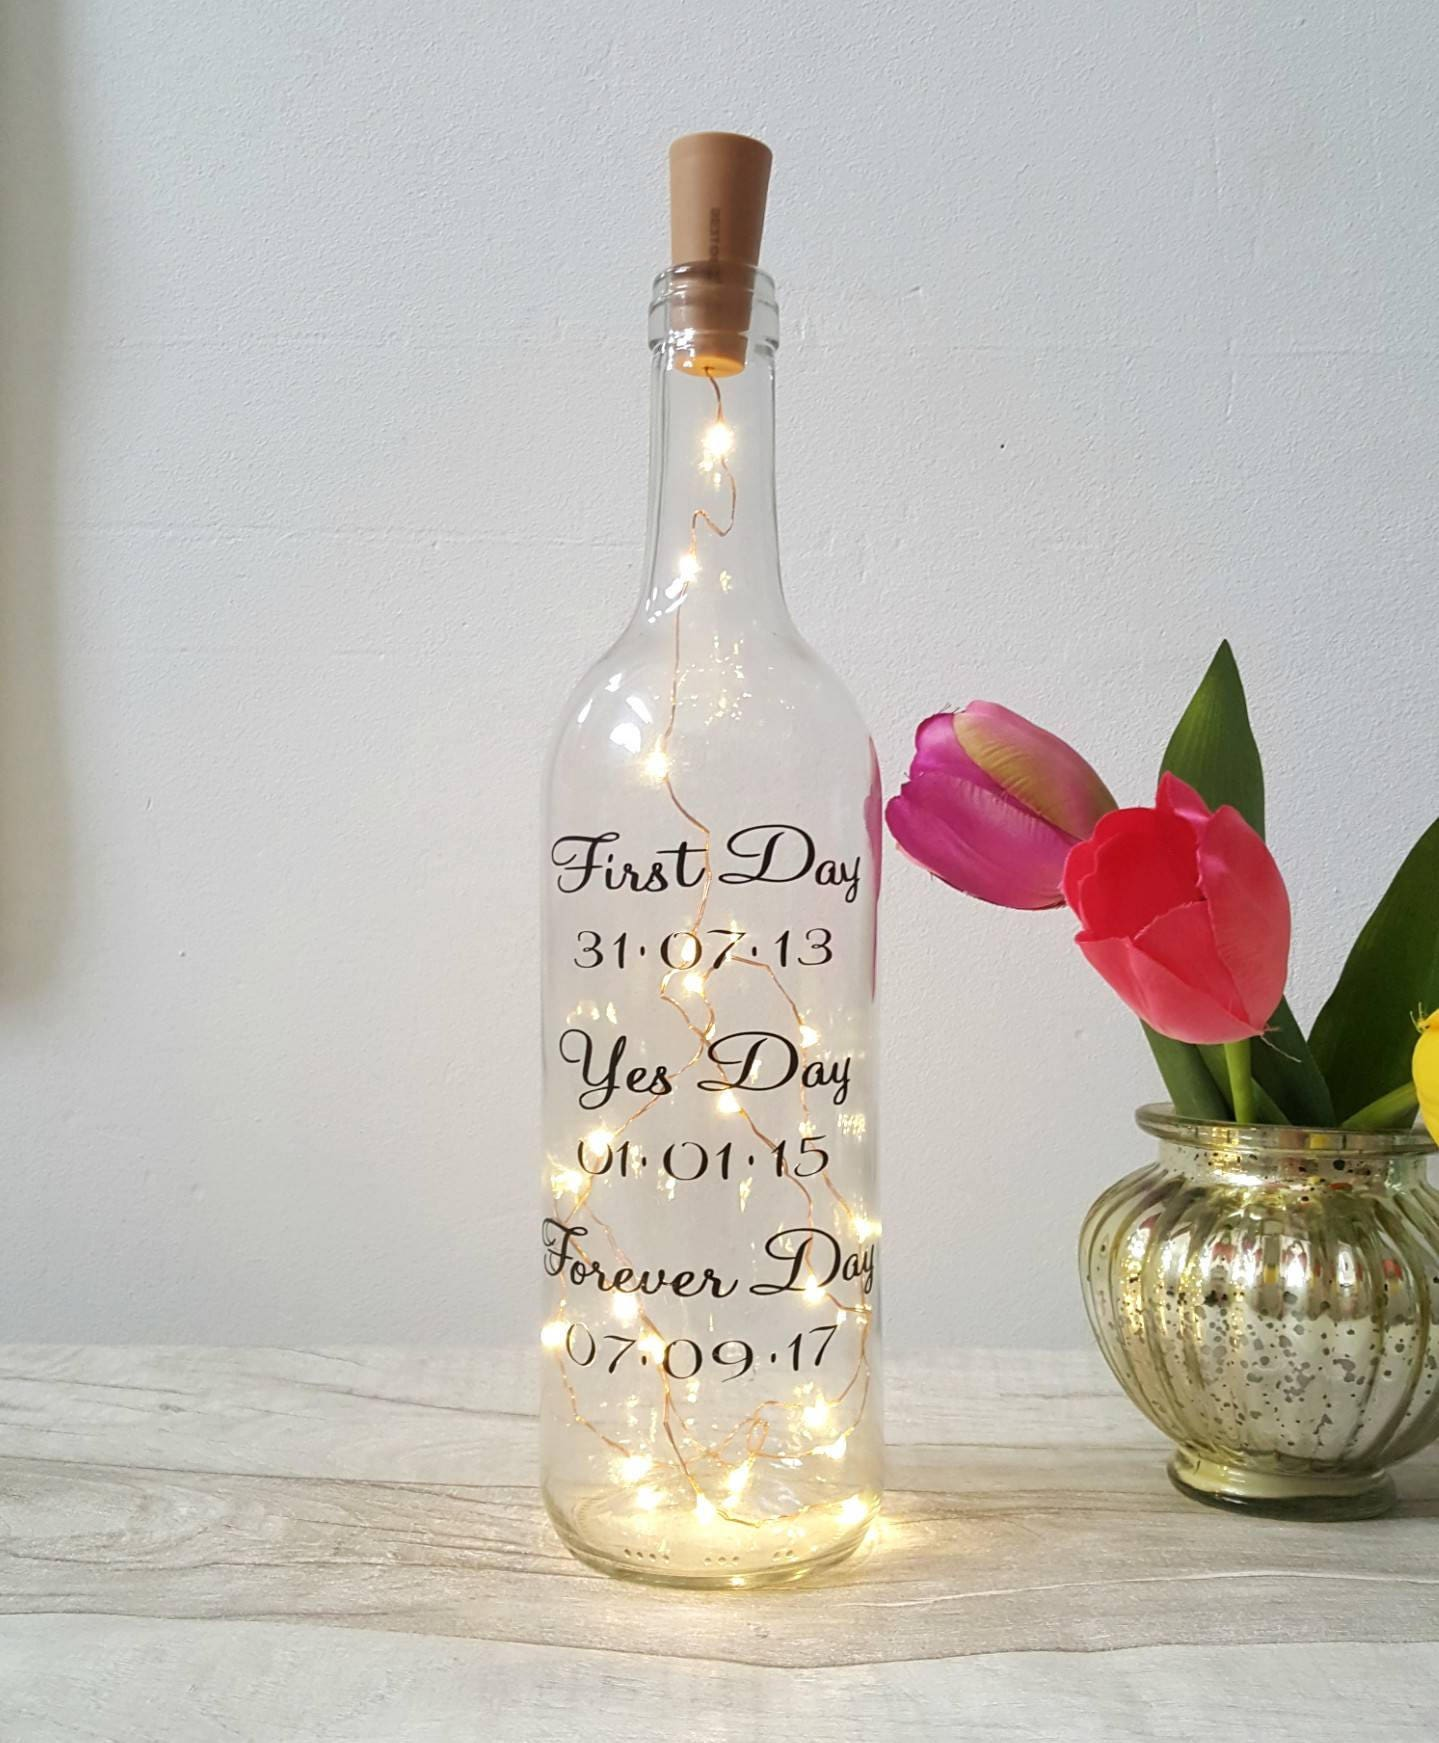 Wedding Wine Bottle Gifts: Wedding Day Gift Wine Light Bottle Message On A Bottle Gay